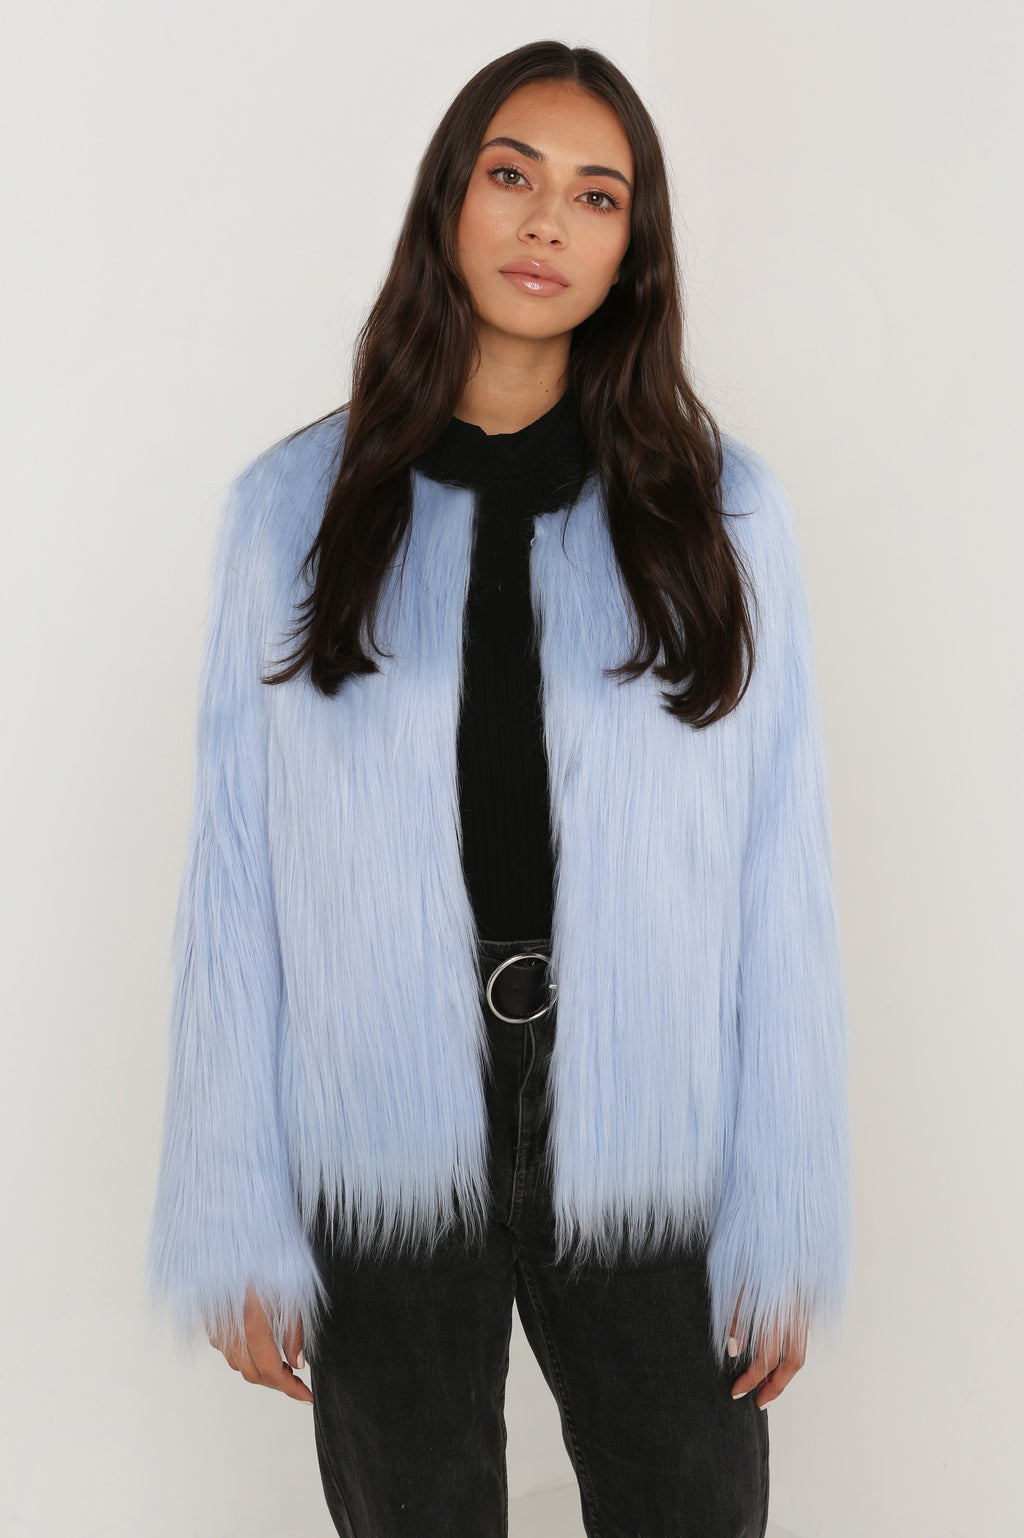 Unreal Dream Jacket in Pastel Blue